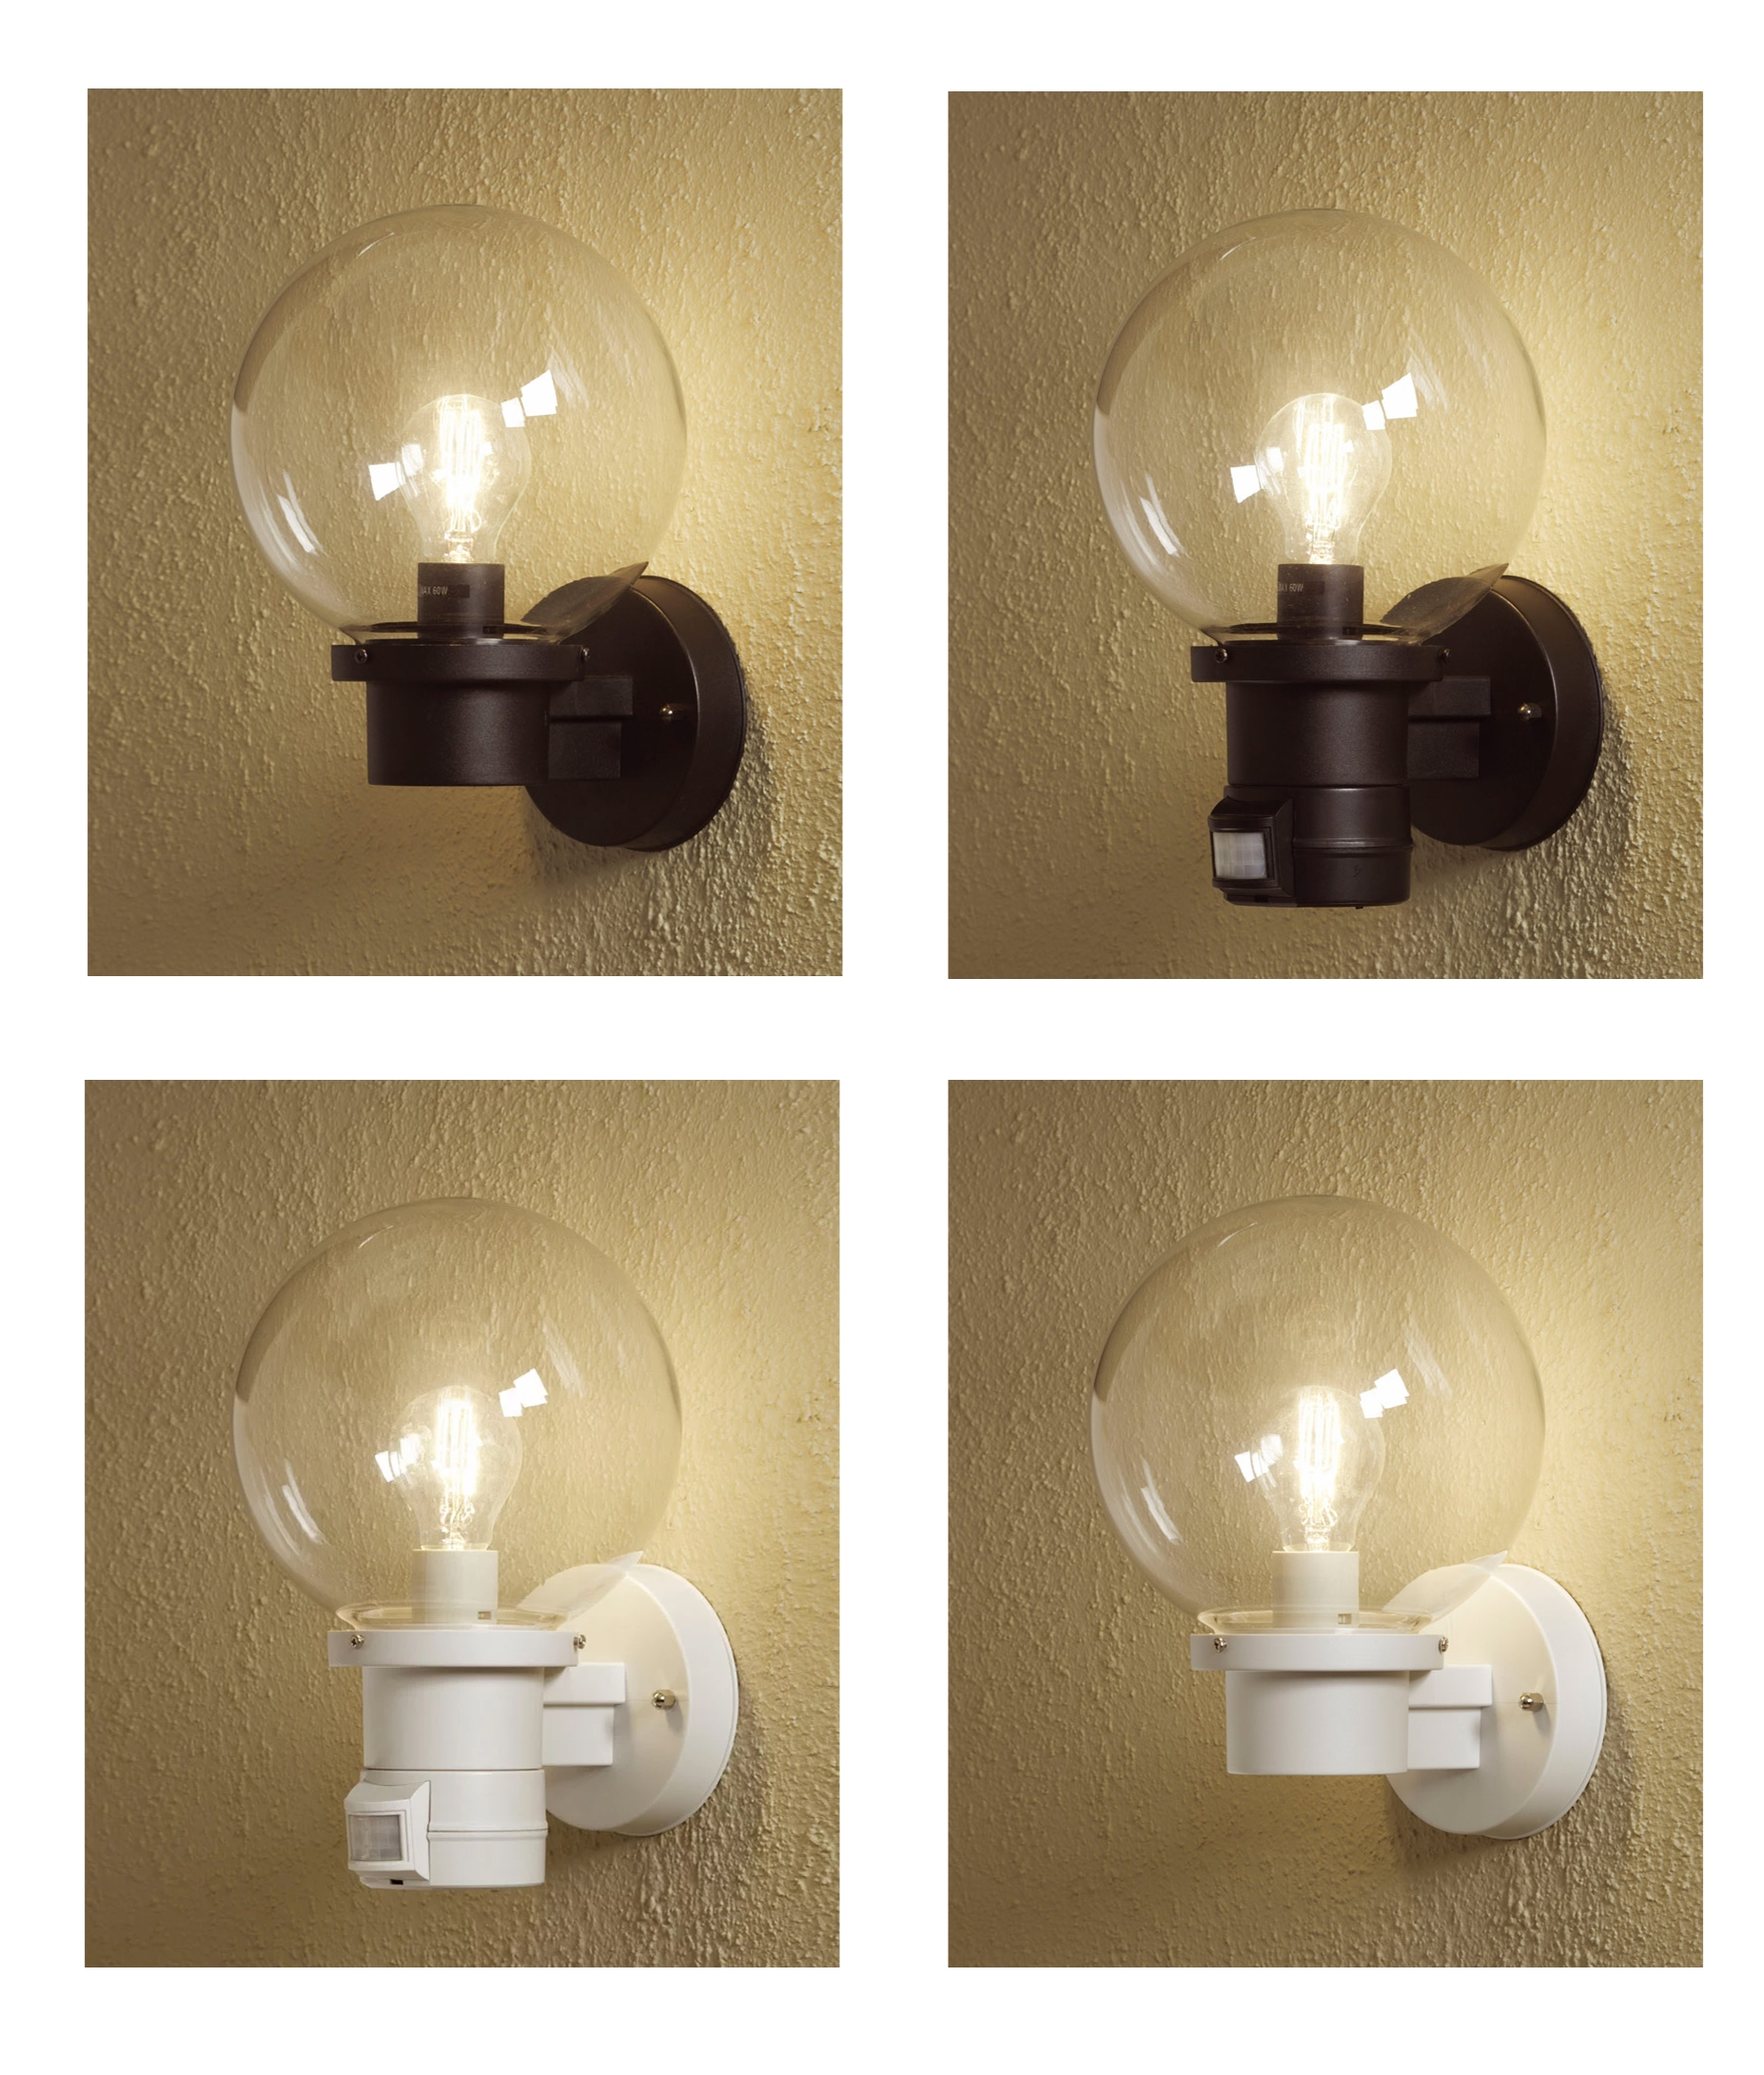 Exterior Globe Wall Lights In Black Or White With Pir And Dusk Til Dawn Sensors